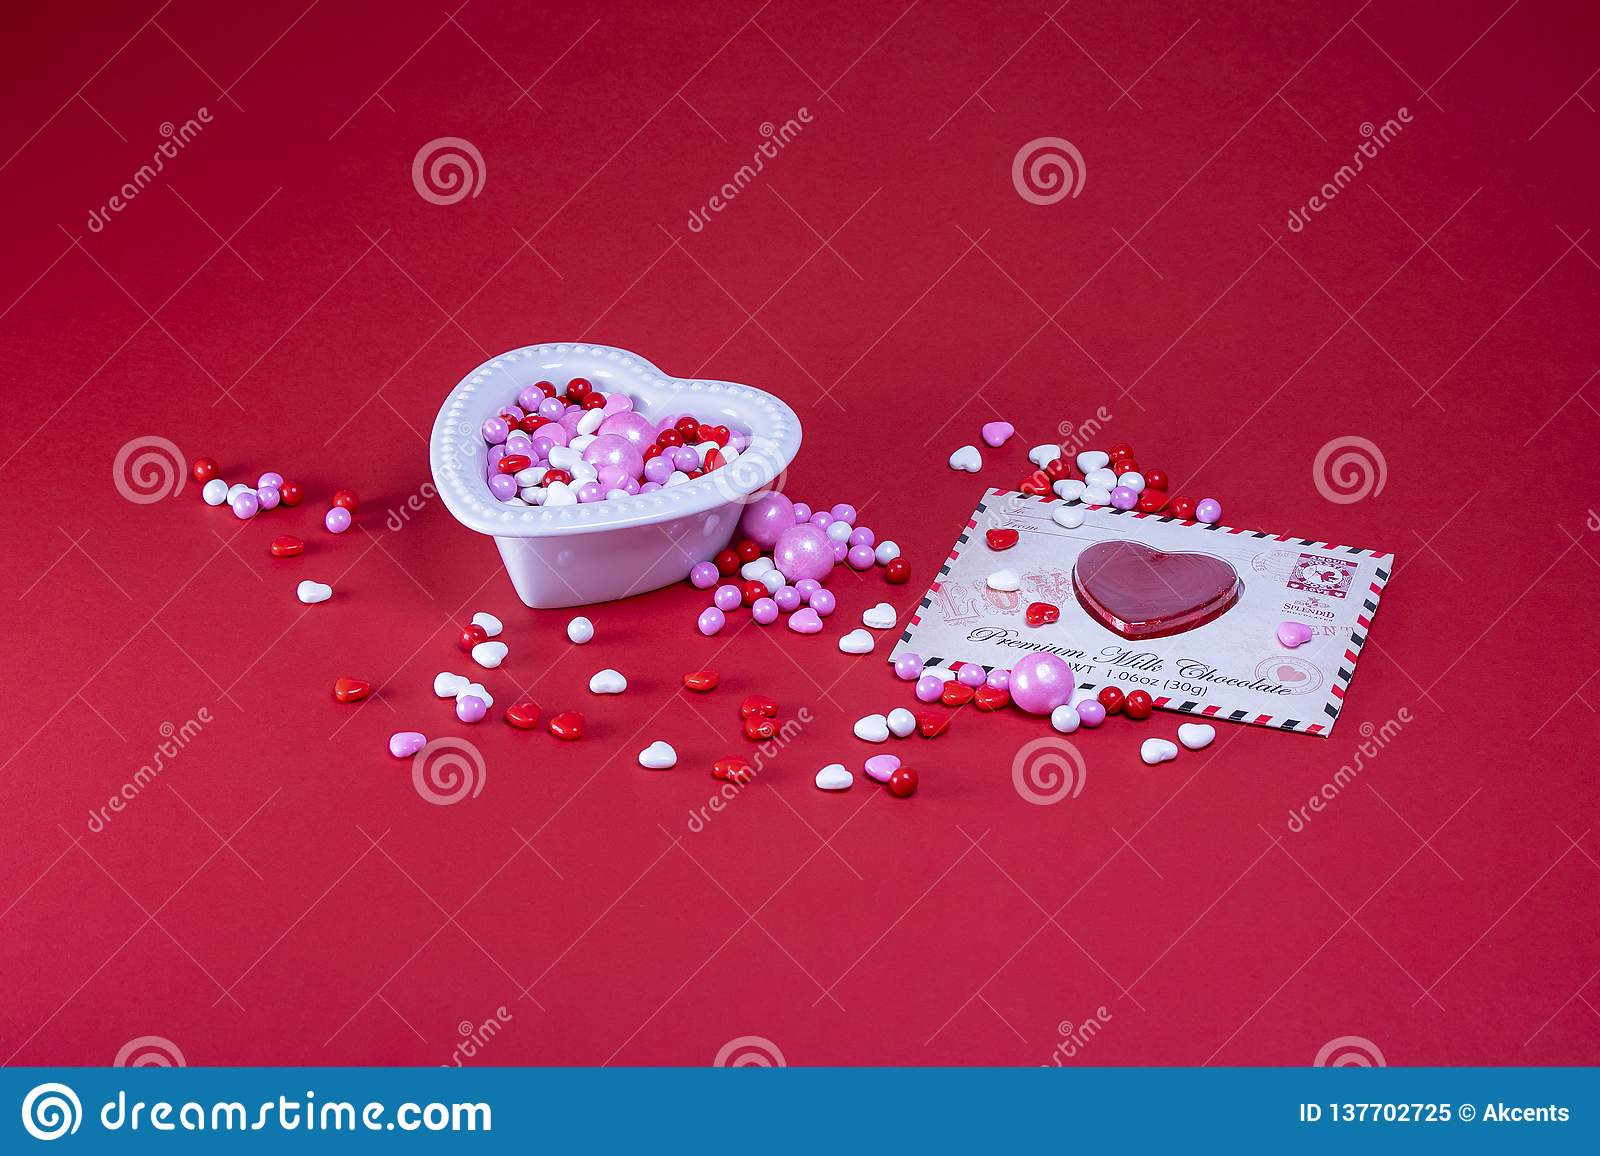 Valentine candy on a red background